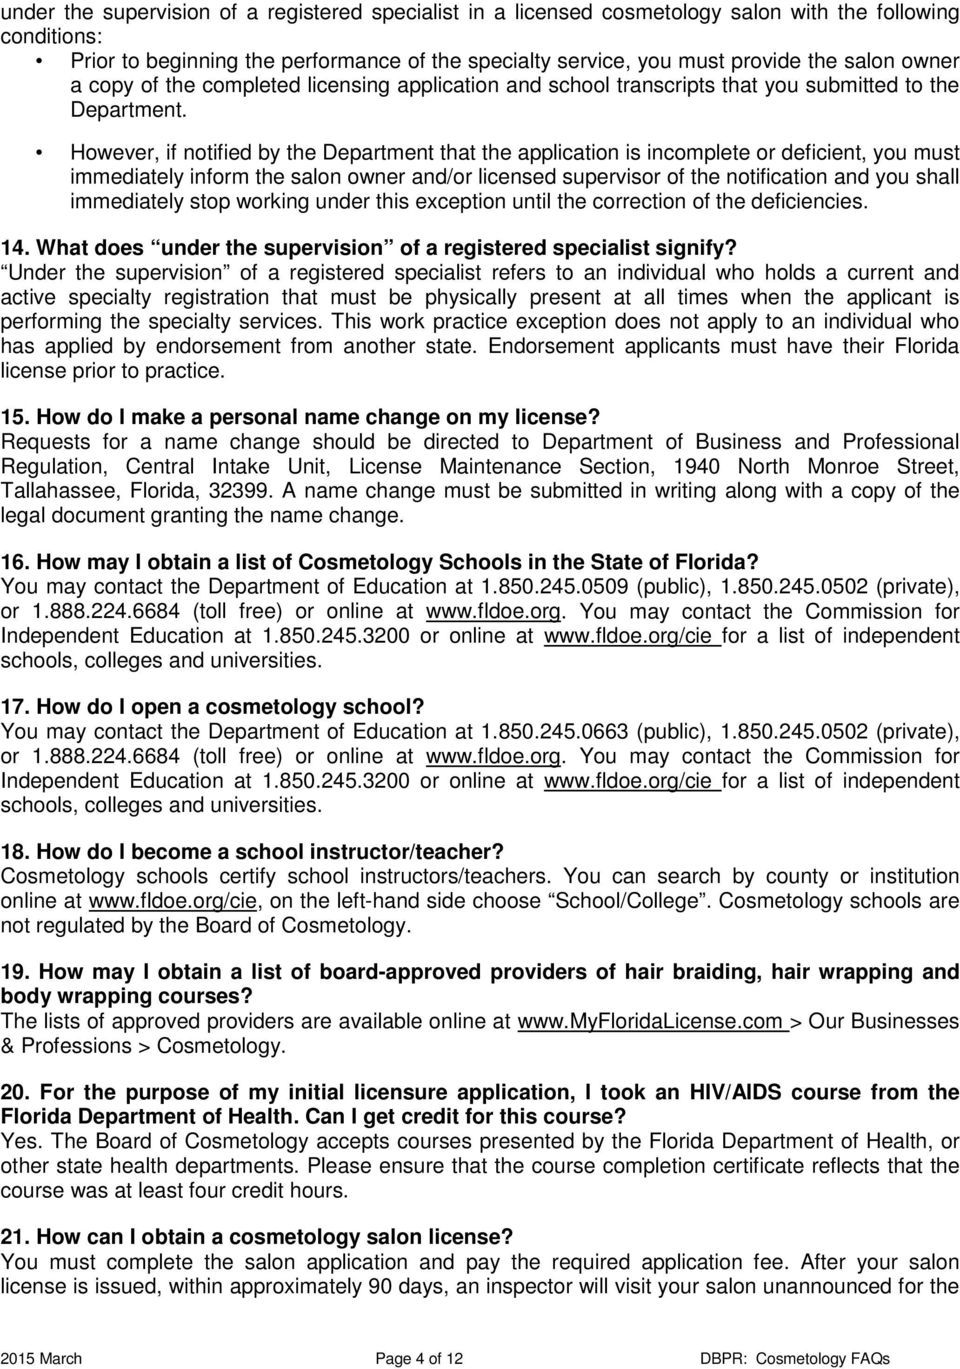 BOARD OF COSMETOLOGY FREQUENTLY ASKED QUESTIONS AND ANSWERS